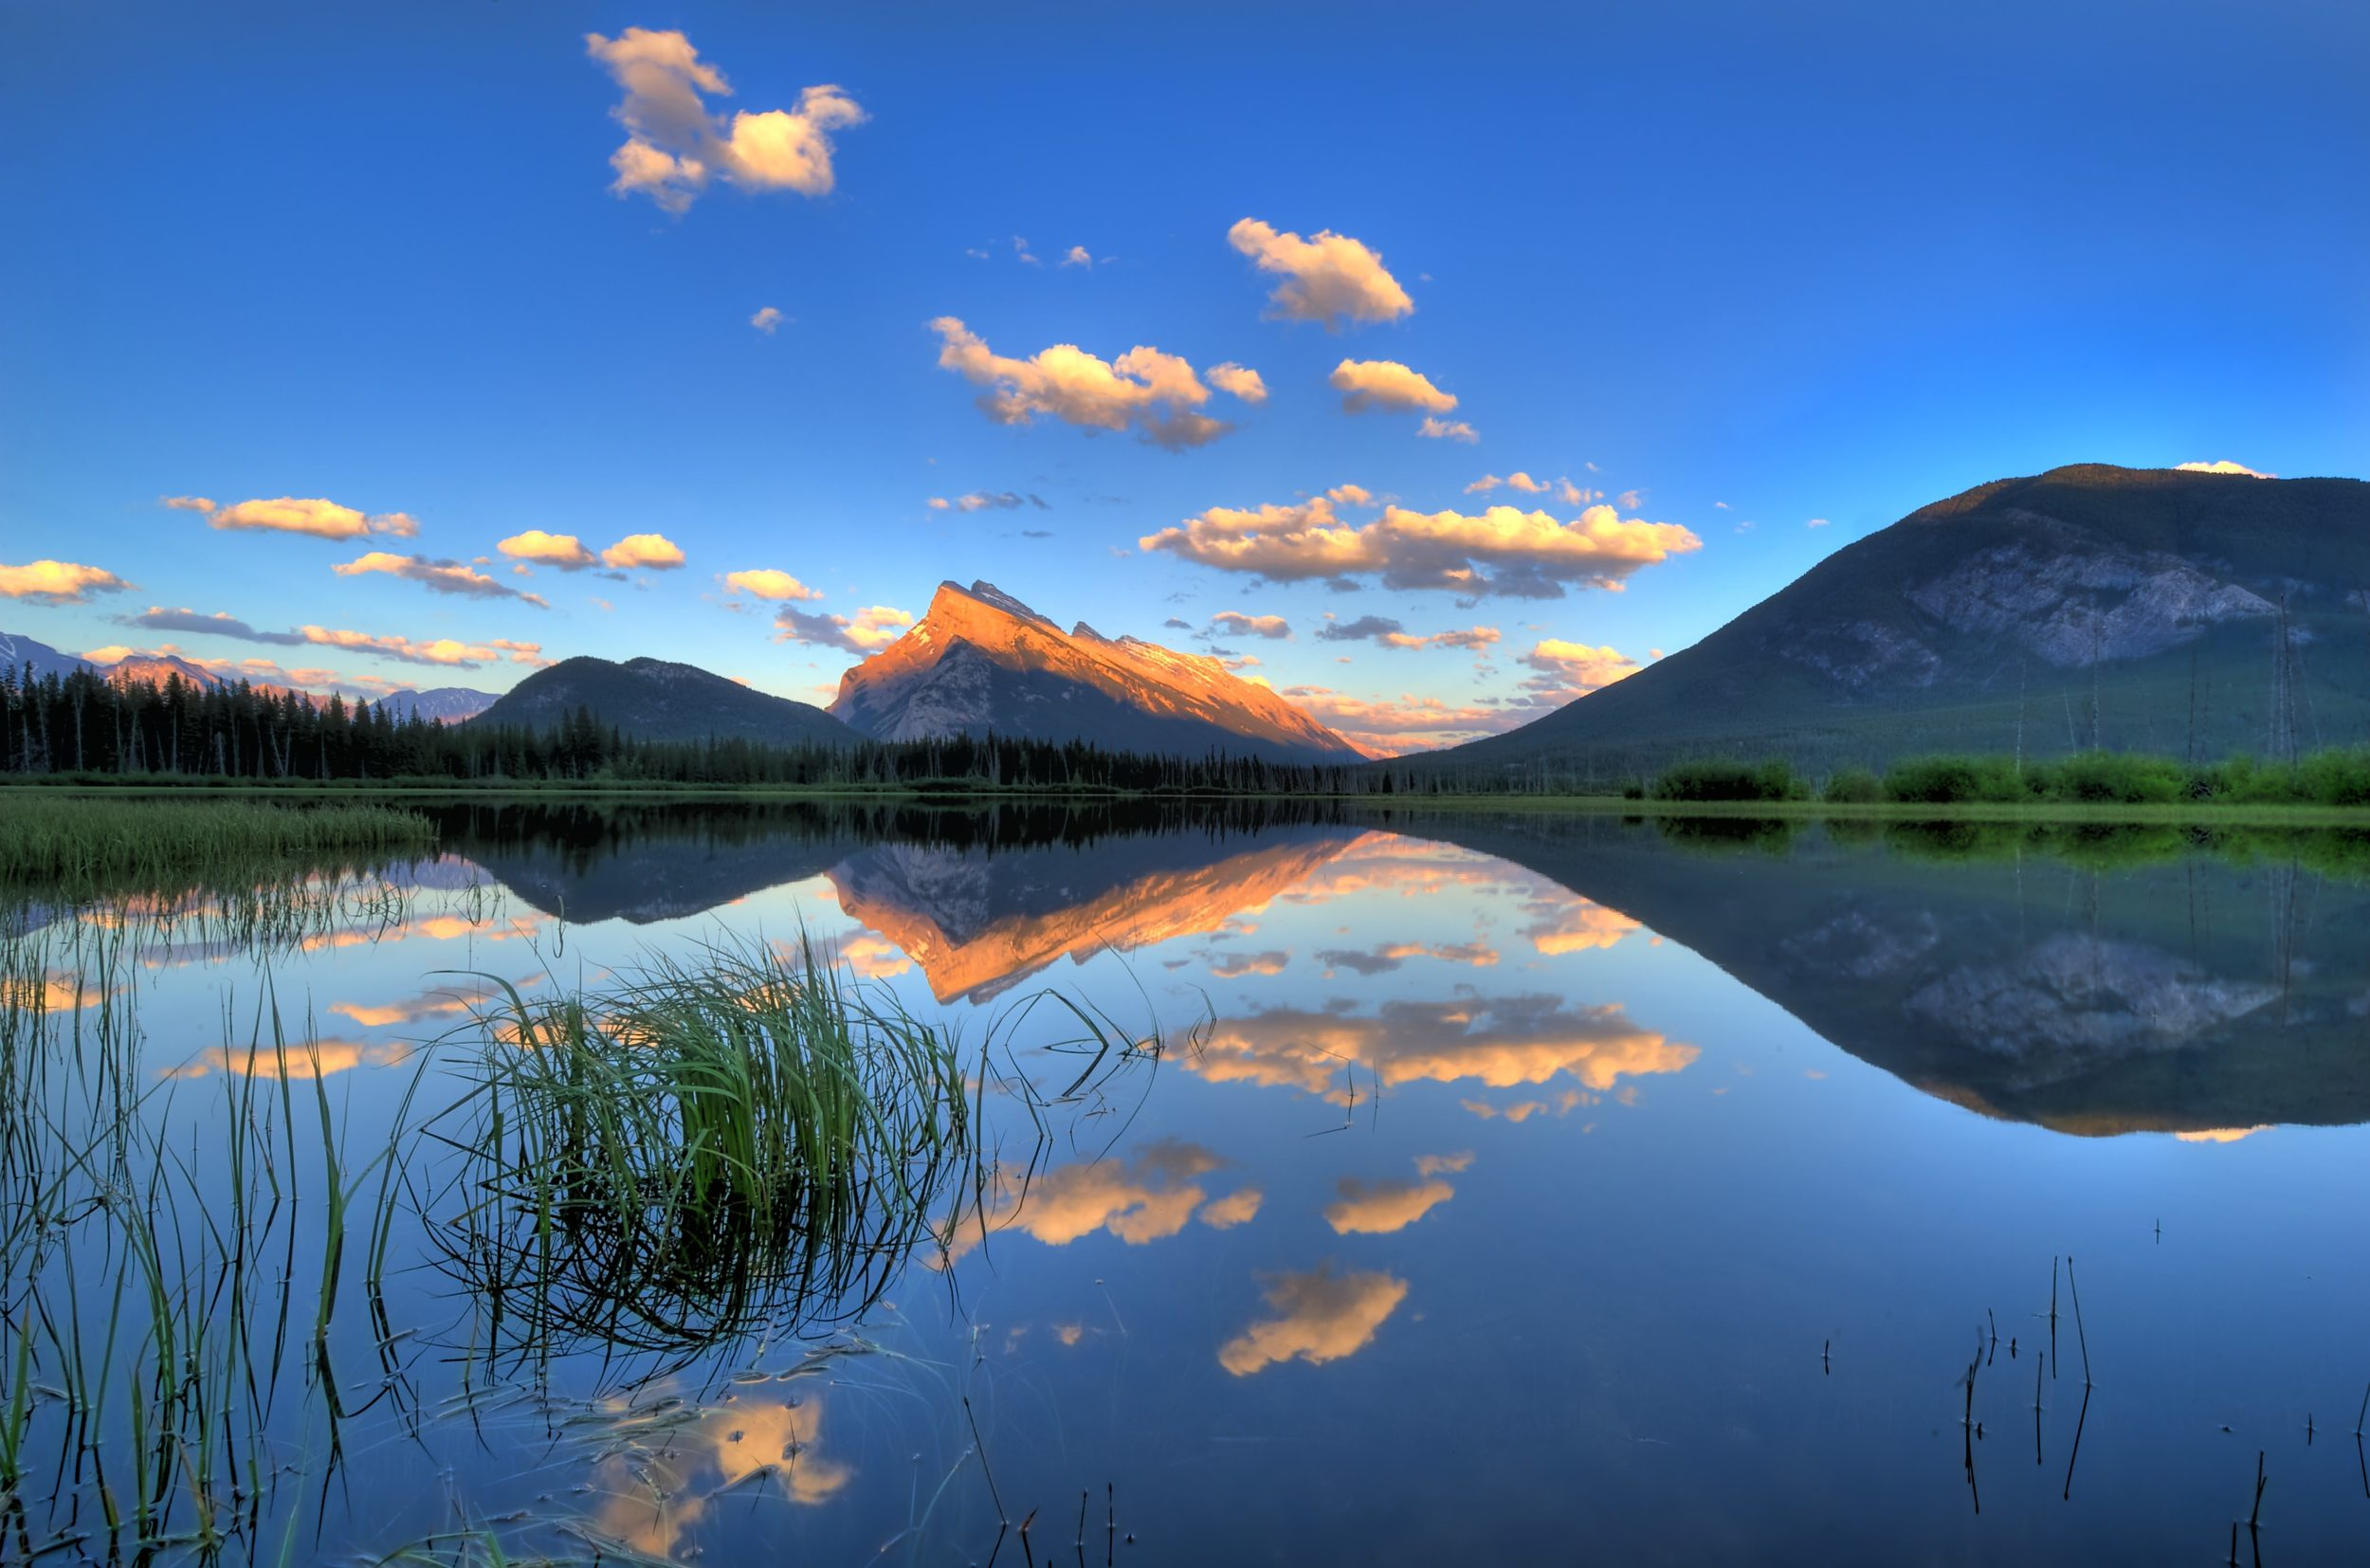 Vermillion lakes and Mt Rundle, Canadian Rockies